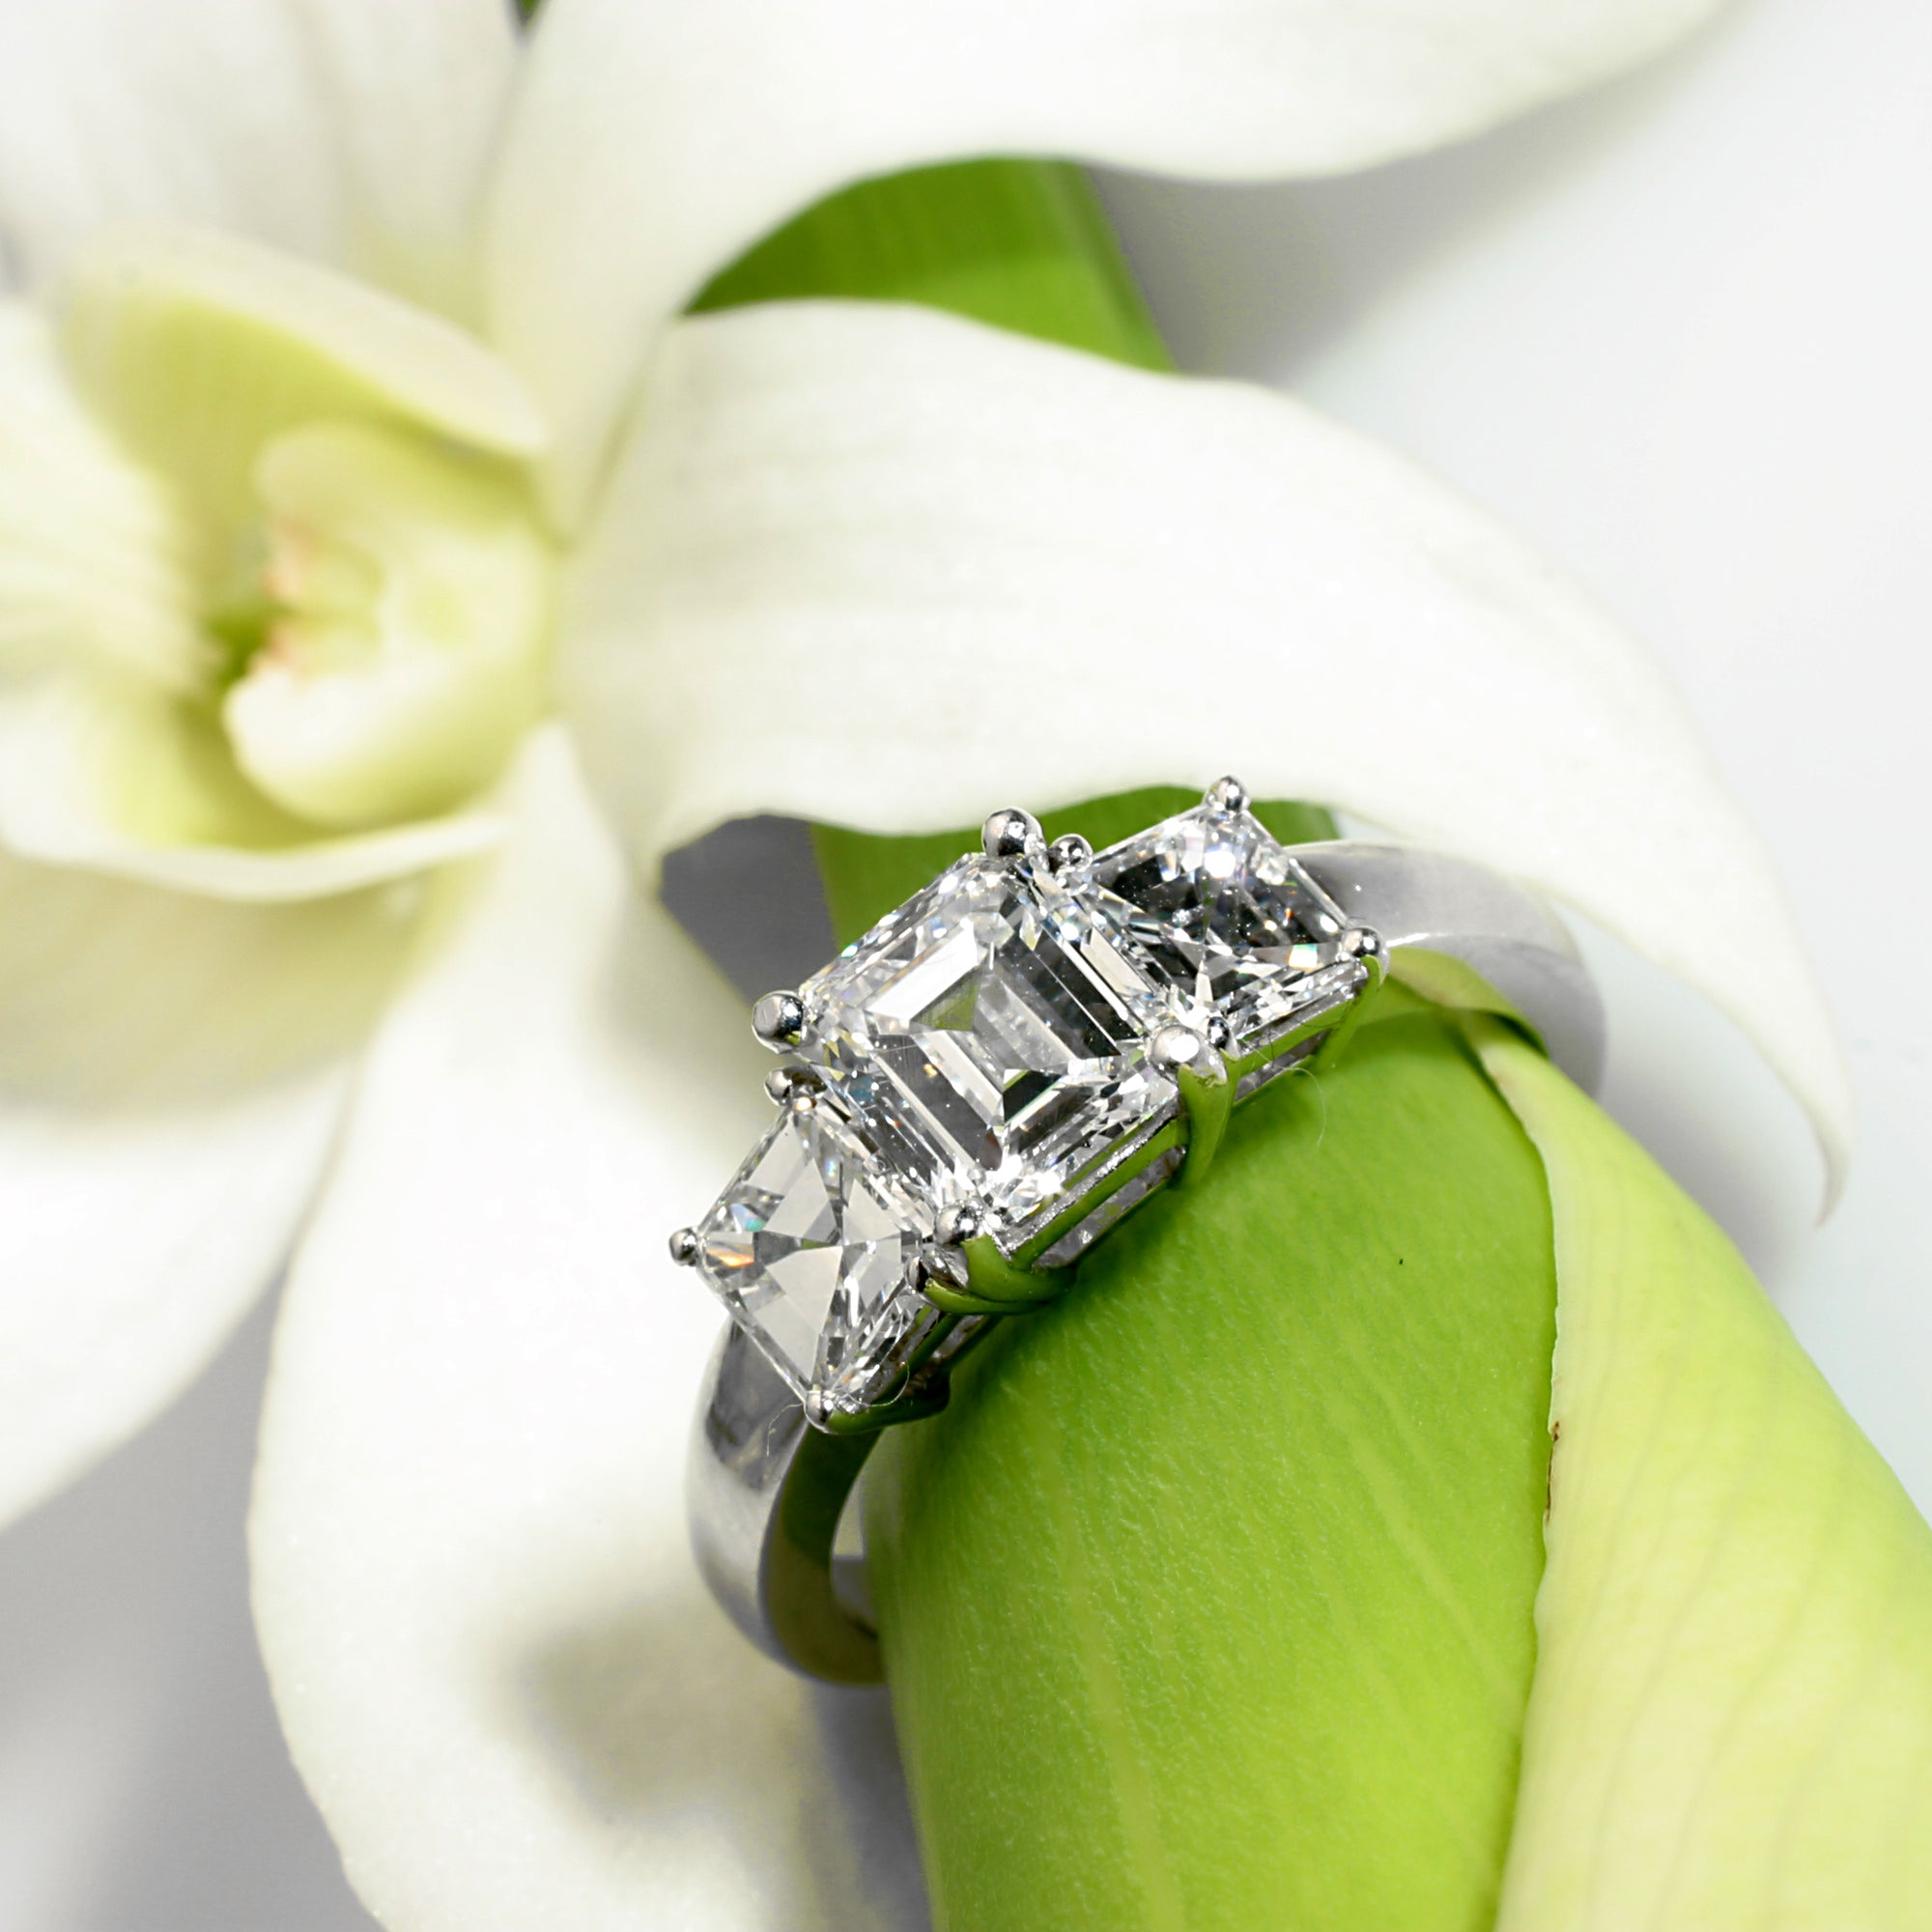 14K white gold diamond engagement ring featuring 1 emerald-cut diamond and 2 Asscher diamond side stones. Judith Arnell Jewelers.